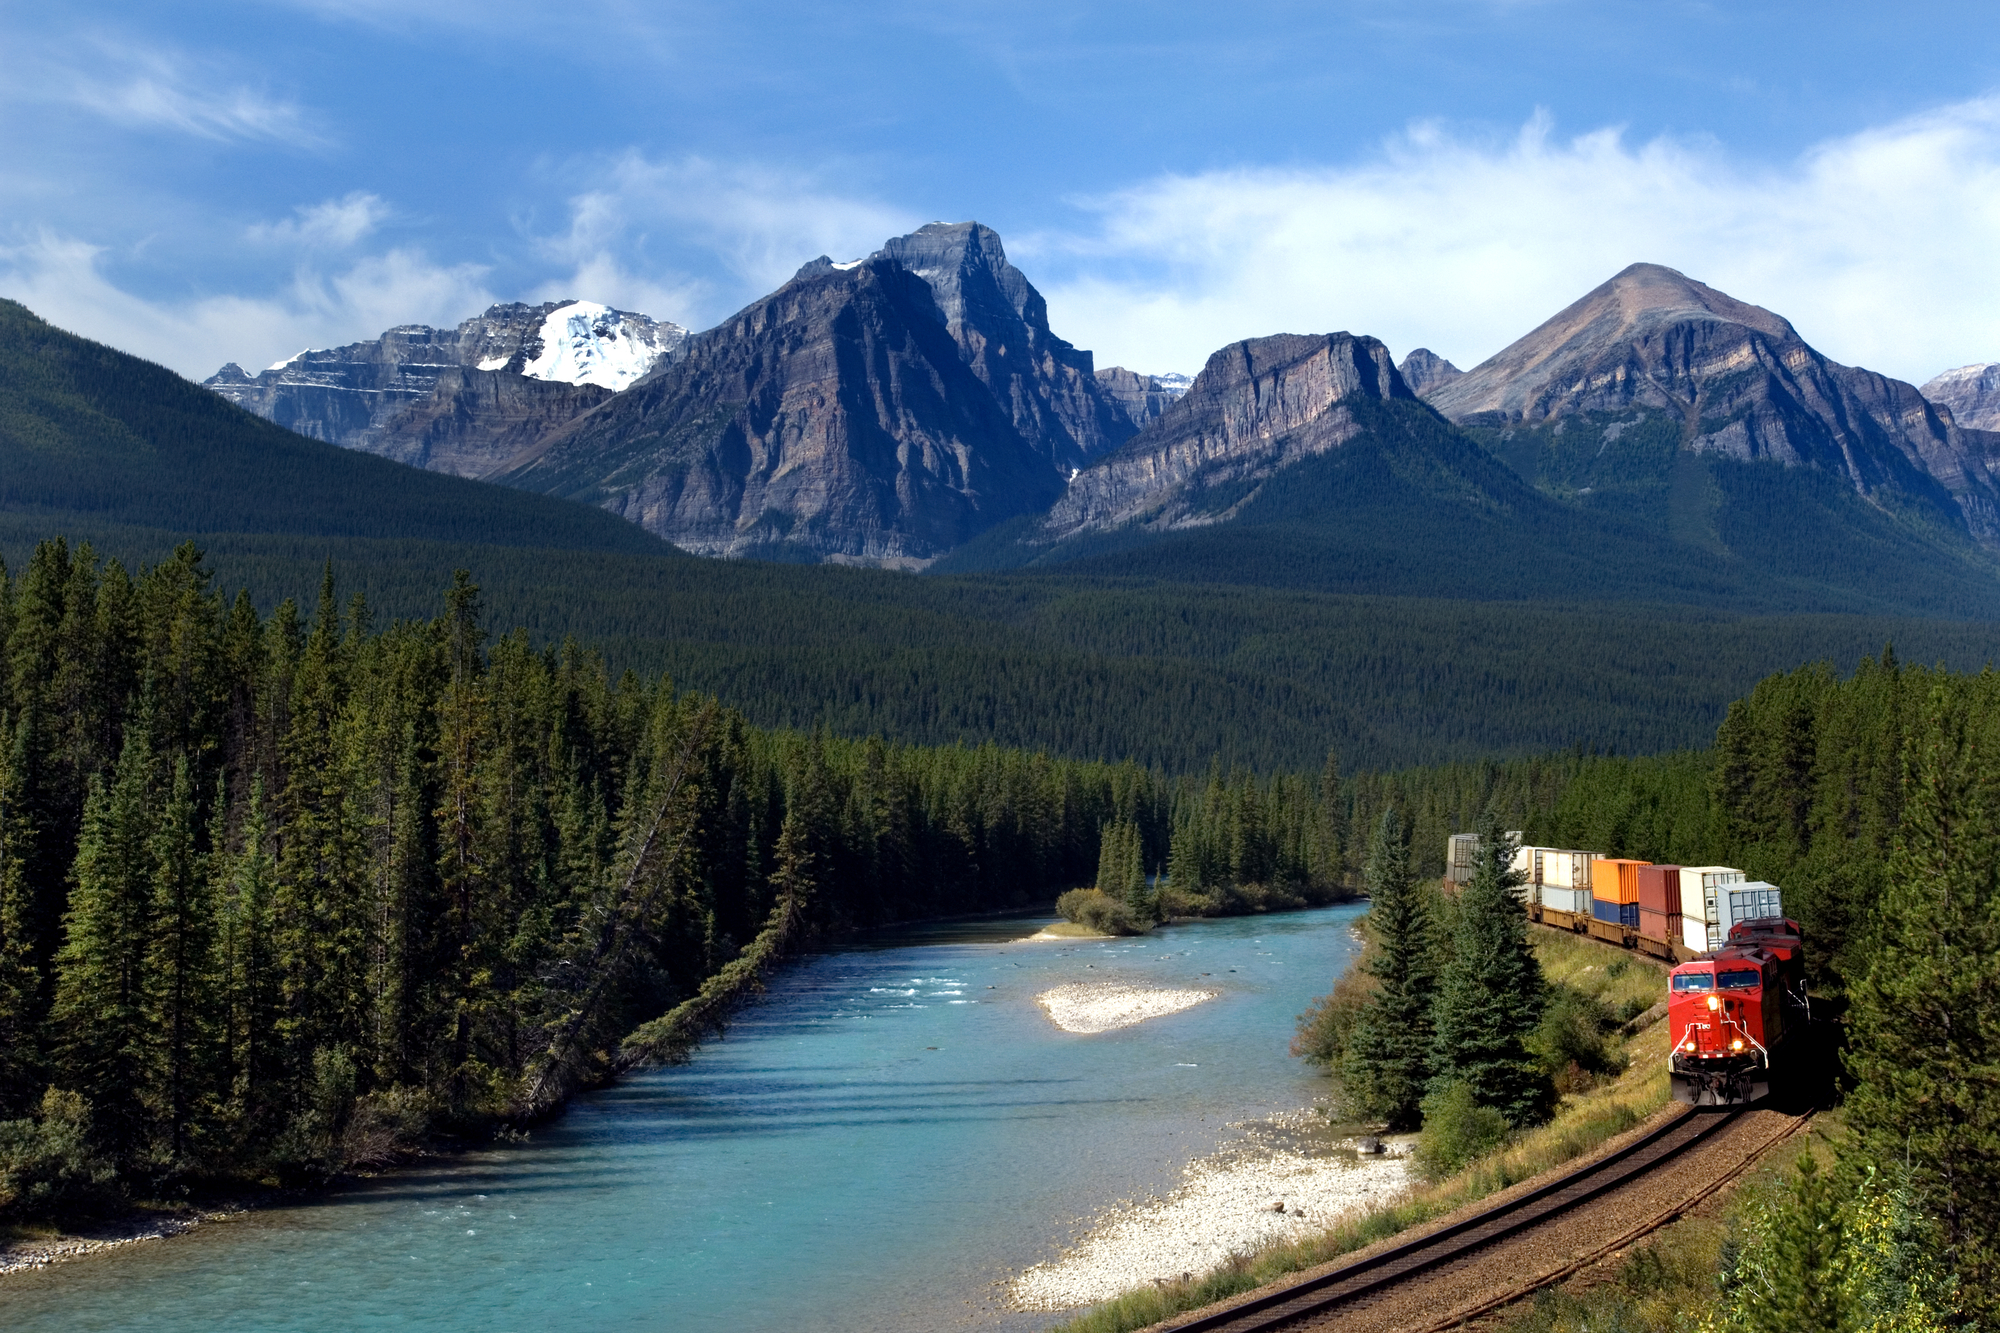 A train traveling over a scenic region